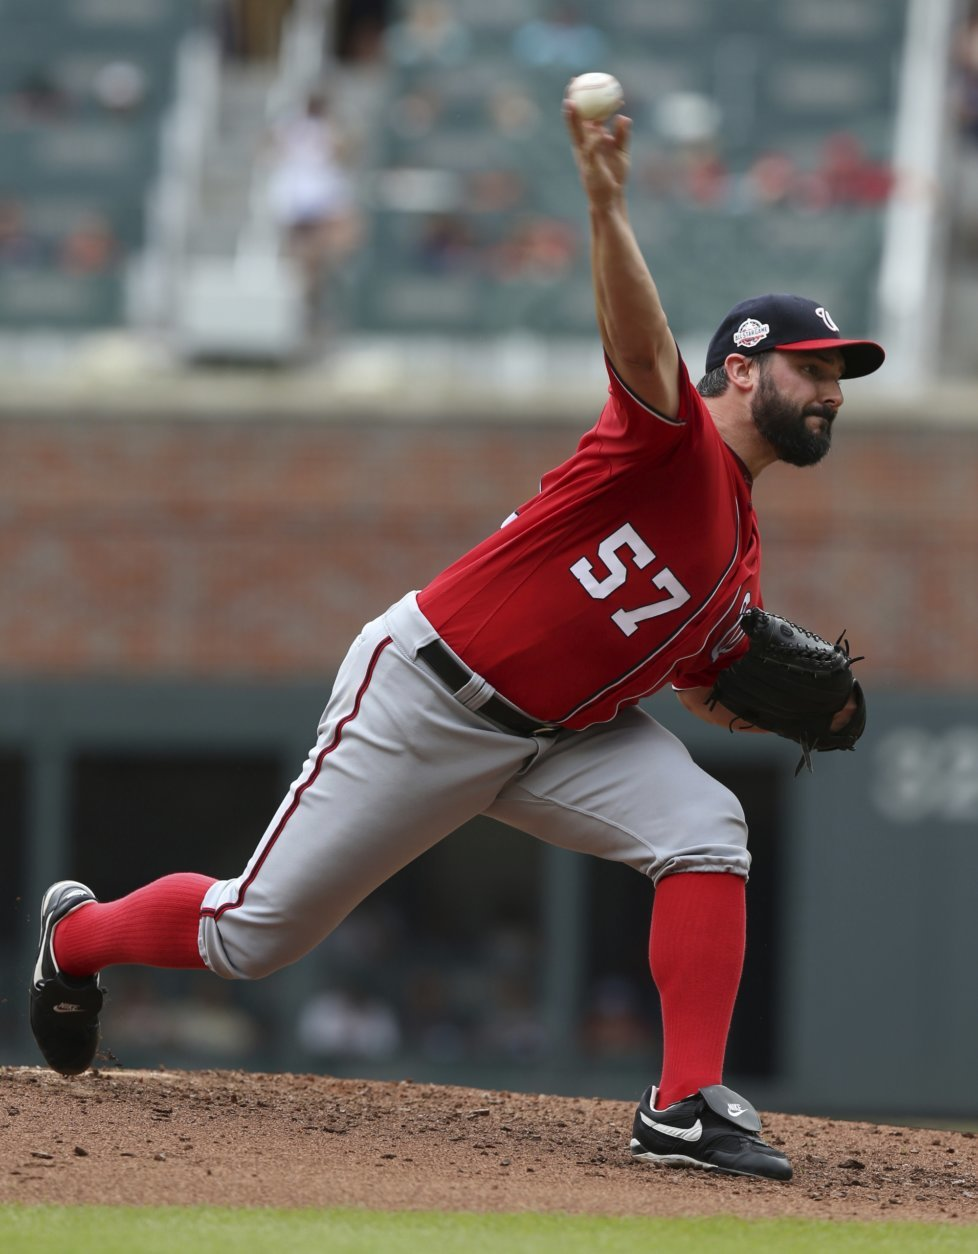 Washington Nationals starting pitcher Tanner Roark throws against the Atlanta Braves during the second inning of a baseball game Sunday, Sept. 16, 2018, in Atlanta. (AP Photo/Tami Chappell)